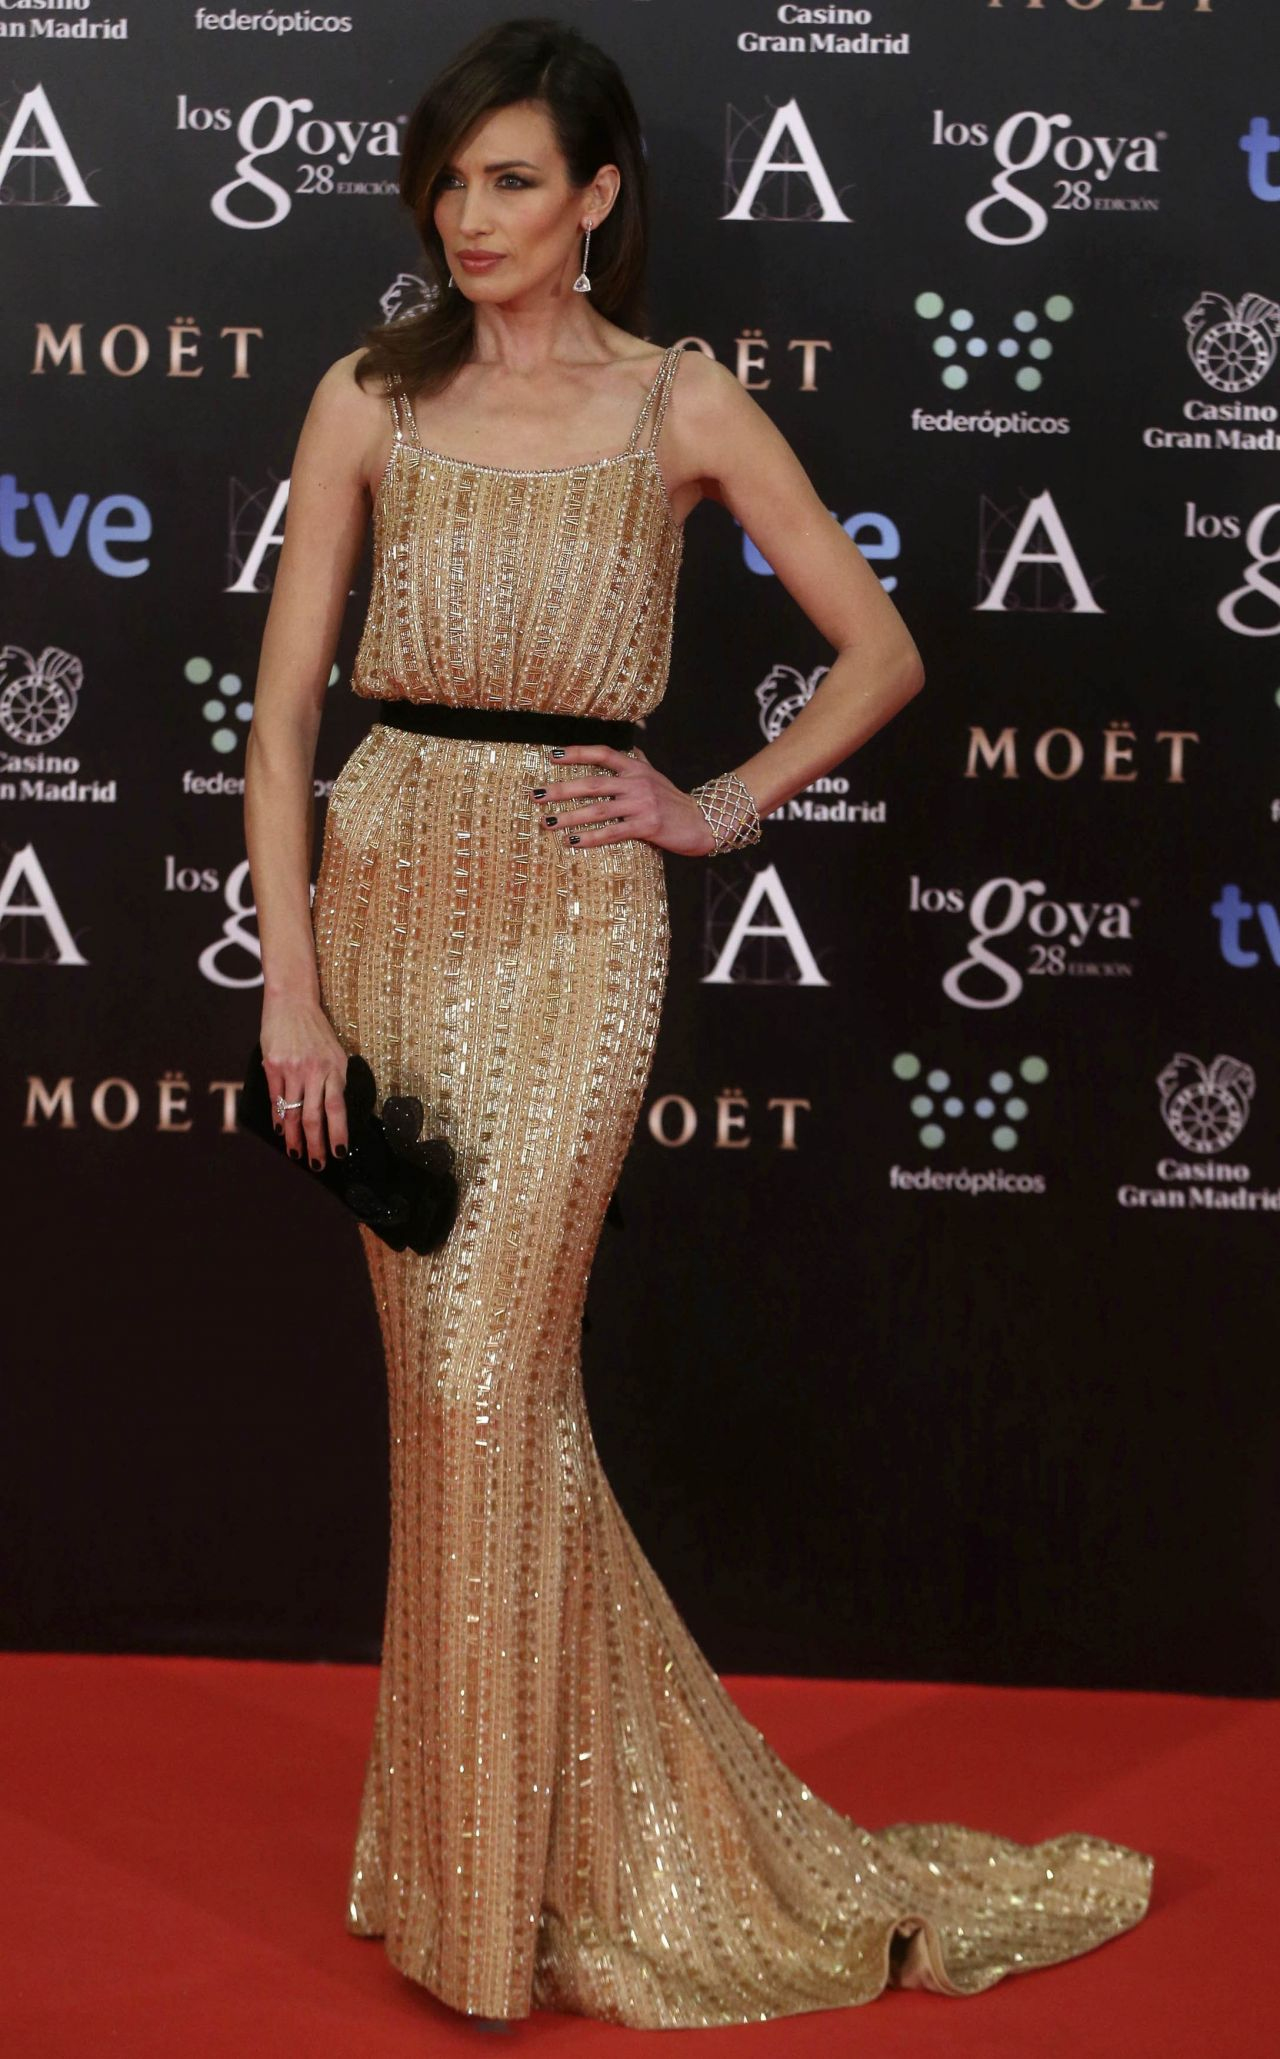 Nieves Álvarez - 2014 Goya Film Awards